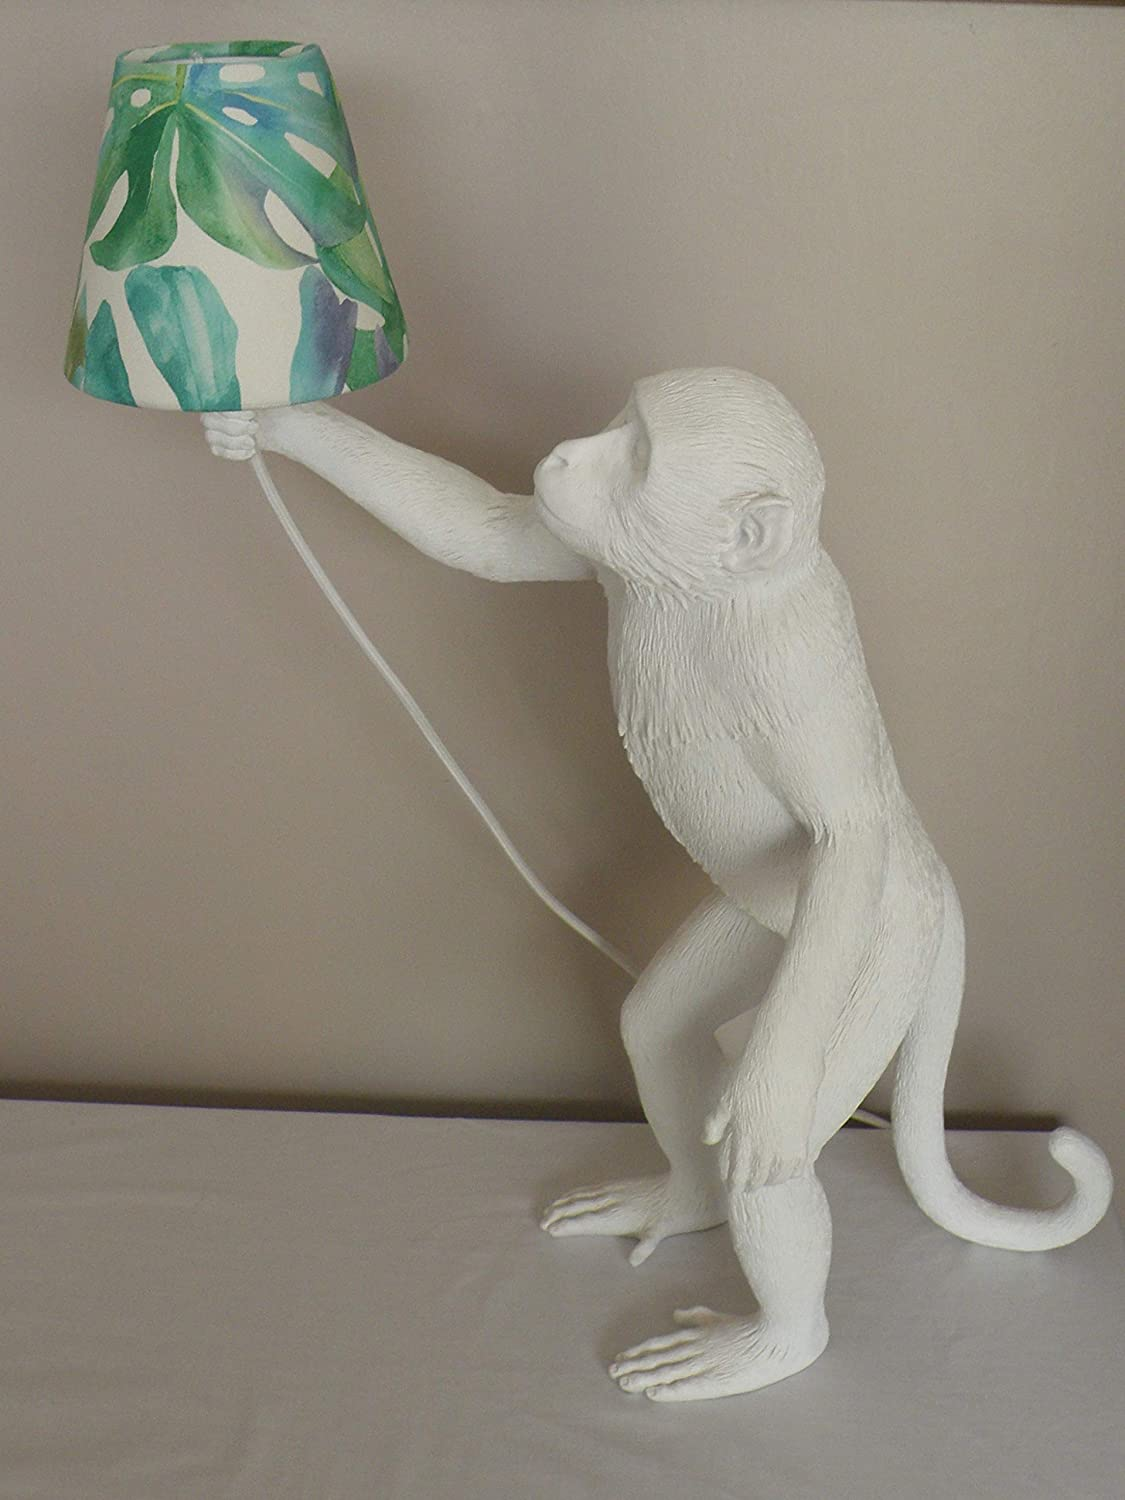 Bespoke Candle Clip Lampshade in Botanical Tropical Palm Green/Blue 2 Sizes